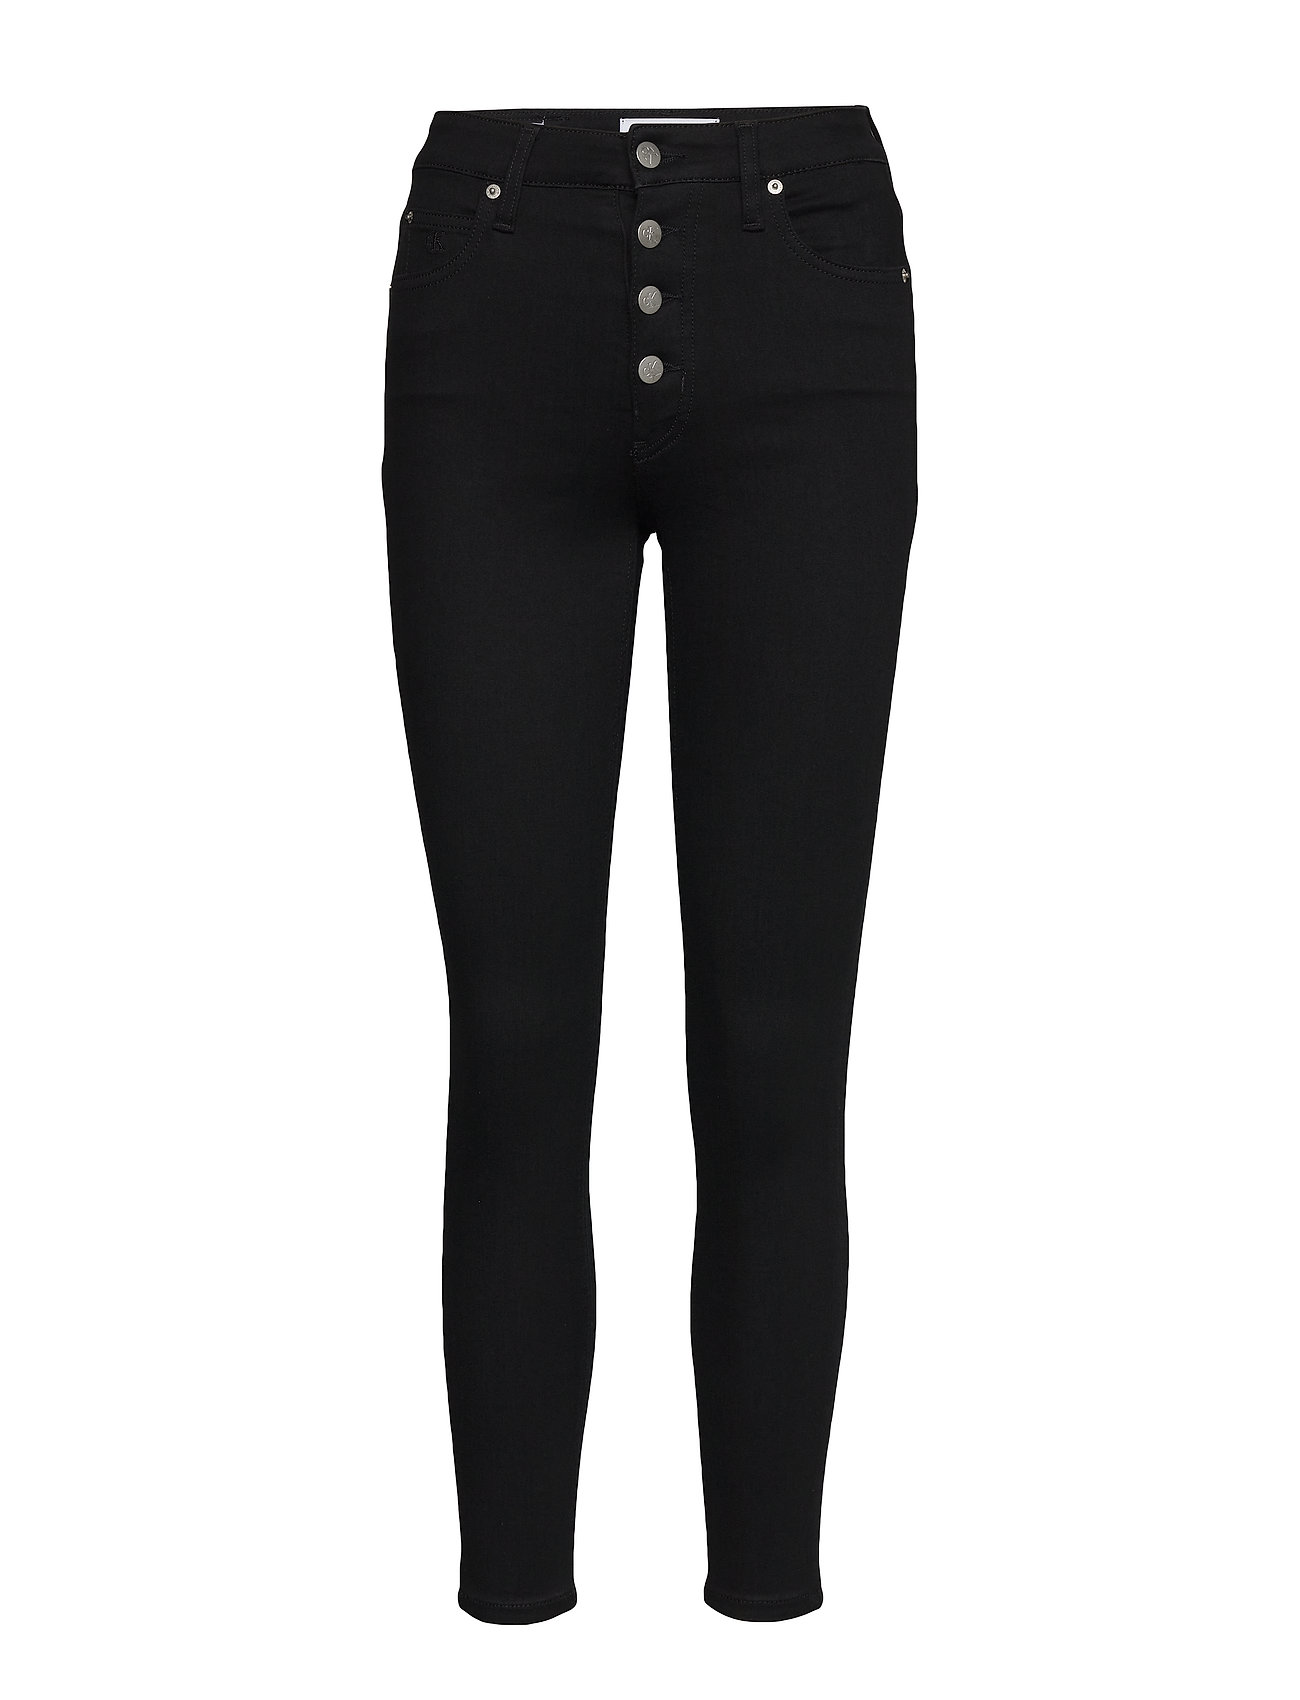 Image of High Rise Super Skinny Ankle Skinny Jeans Sort Calvin Klein Jeans (3406240747)